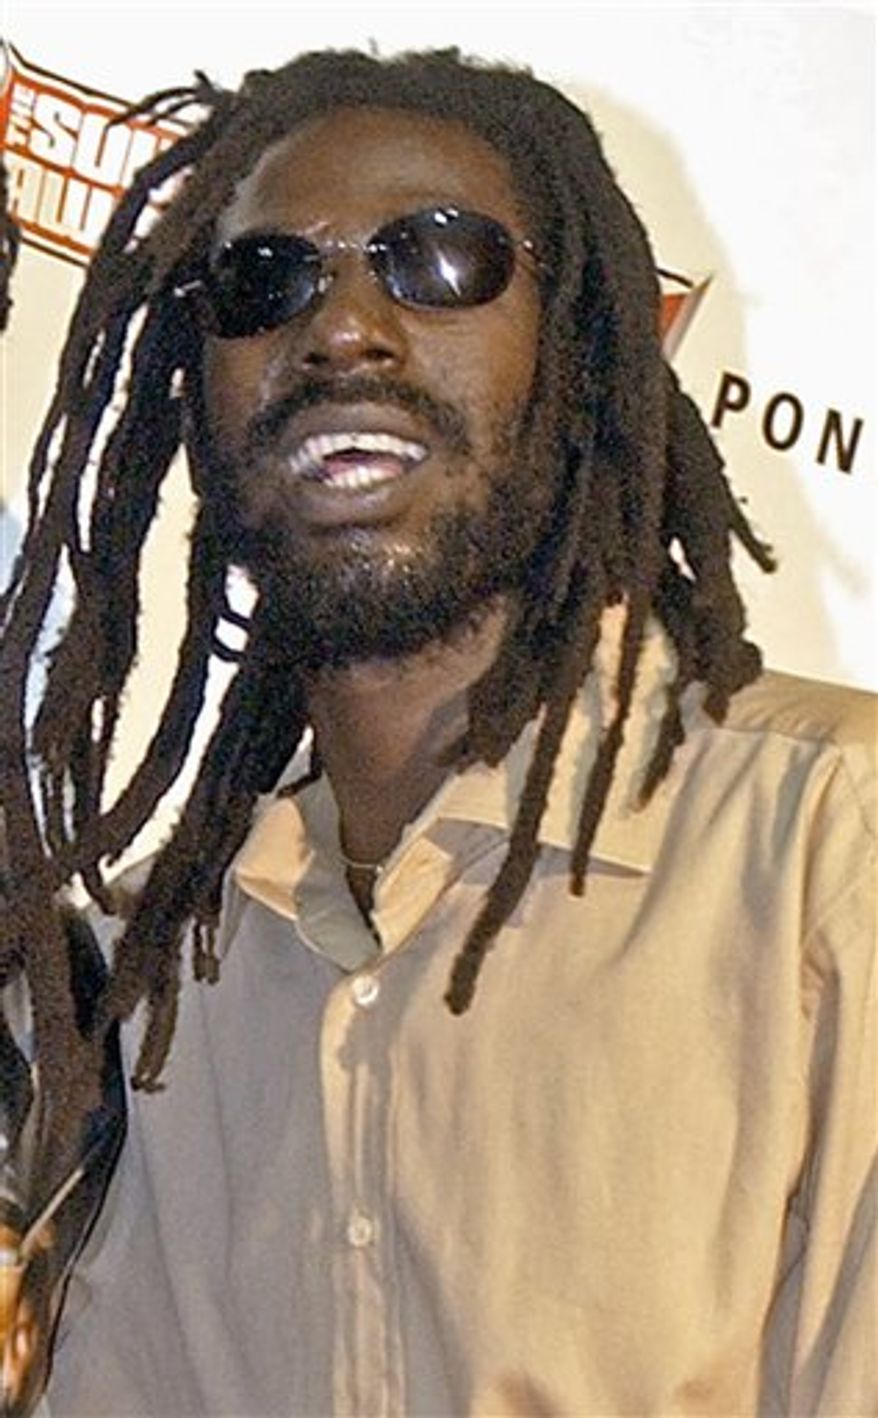 FILE - In this Oct. 13, 2003 file photo, Jamaican reggae star Buju Banton poses at the Source Hip-Hop Music Awards in Miami. A Florida jury has found Grammy-winning reggae singer Buju Banton guilty on cocaine conspiracy charges. Jurors returned their verdict on Tuesday, Feb. 22, 2011 after deliberating for 11 hours over two days. (AP Photo/Yesikka Vivancos, File)